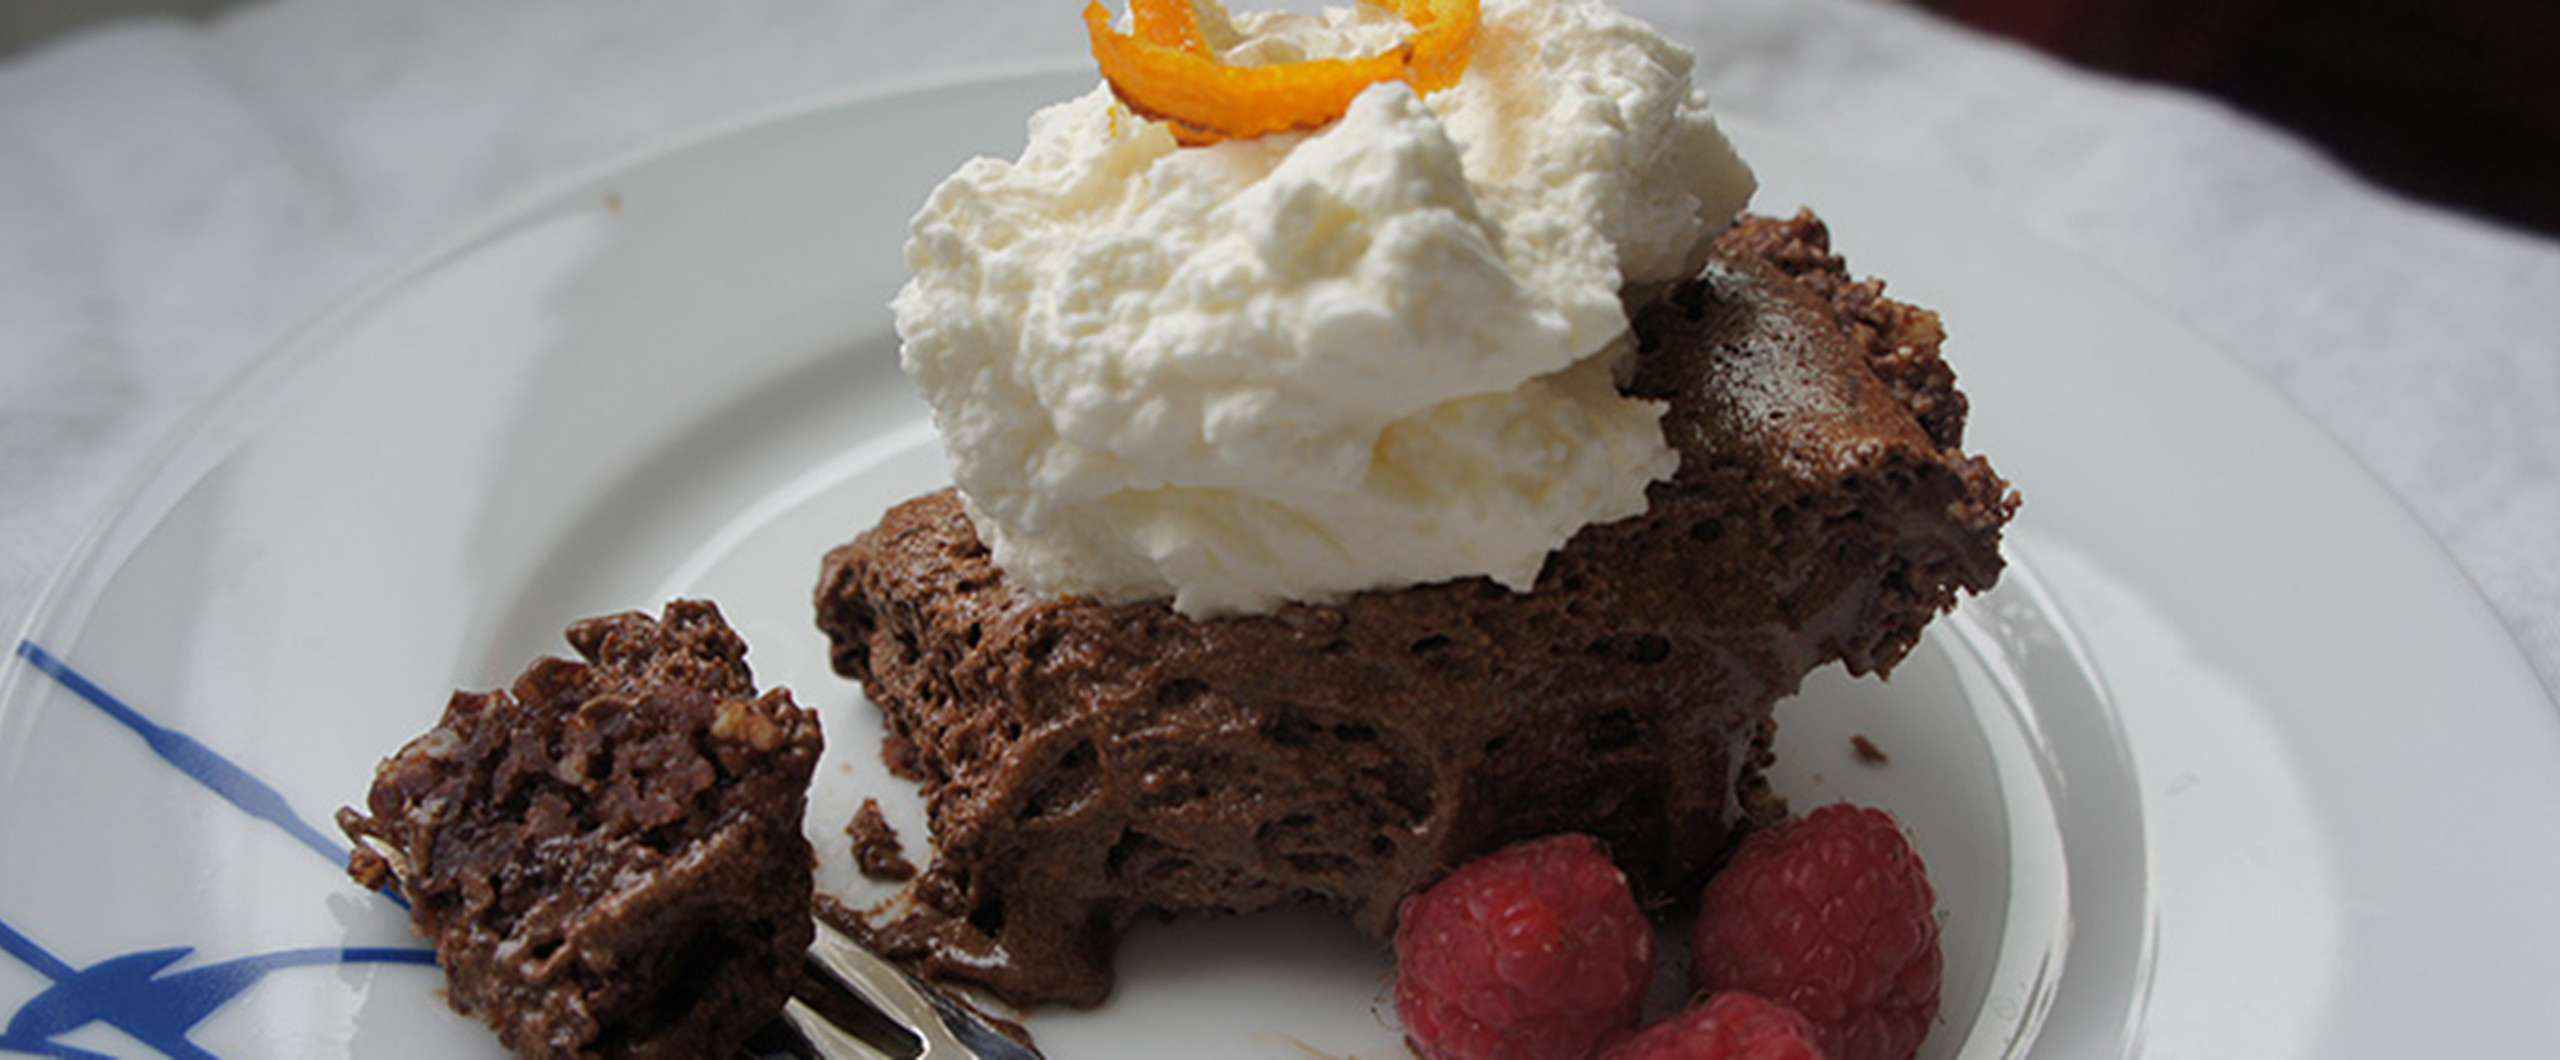 Passover Chocolate Mousse  kosher for passover chocolate mousse cake